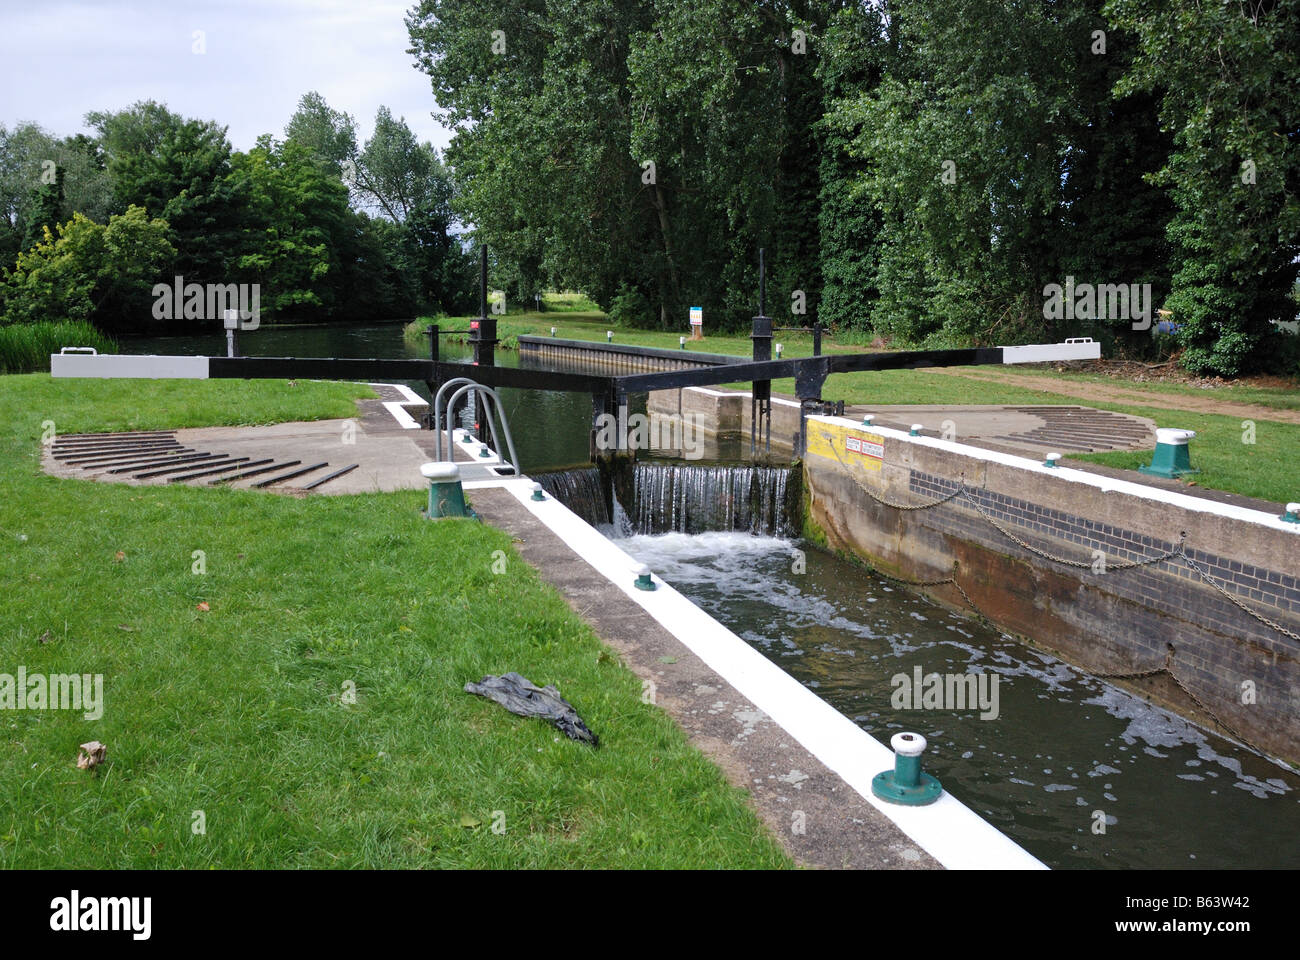 Clifford Hill Lock Lock number 5 This lock on the River Nene has a guillotine gate mechanical lift and this traditional Stock Photo